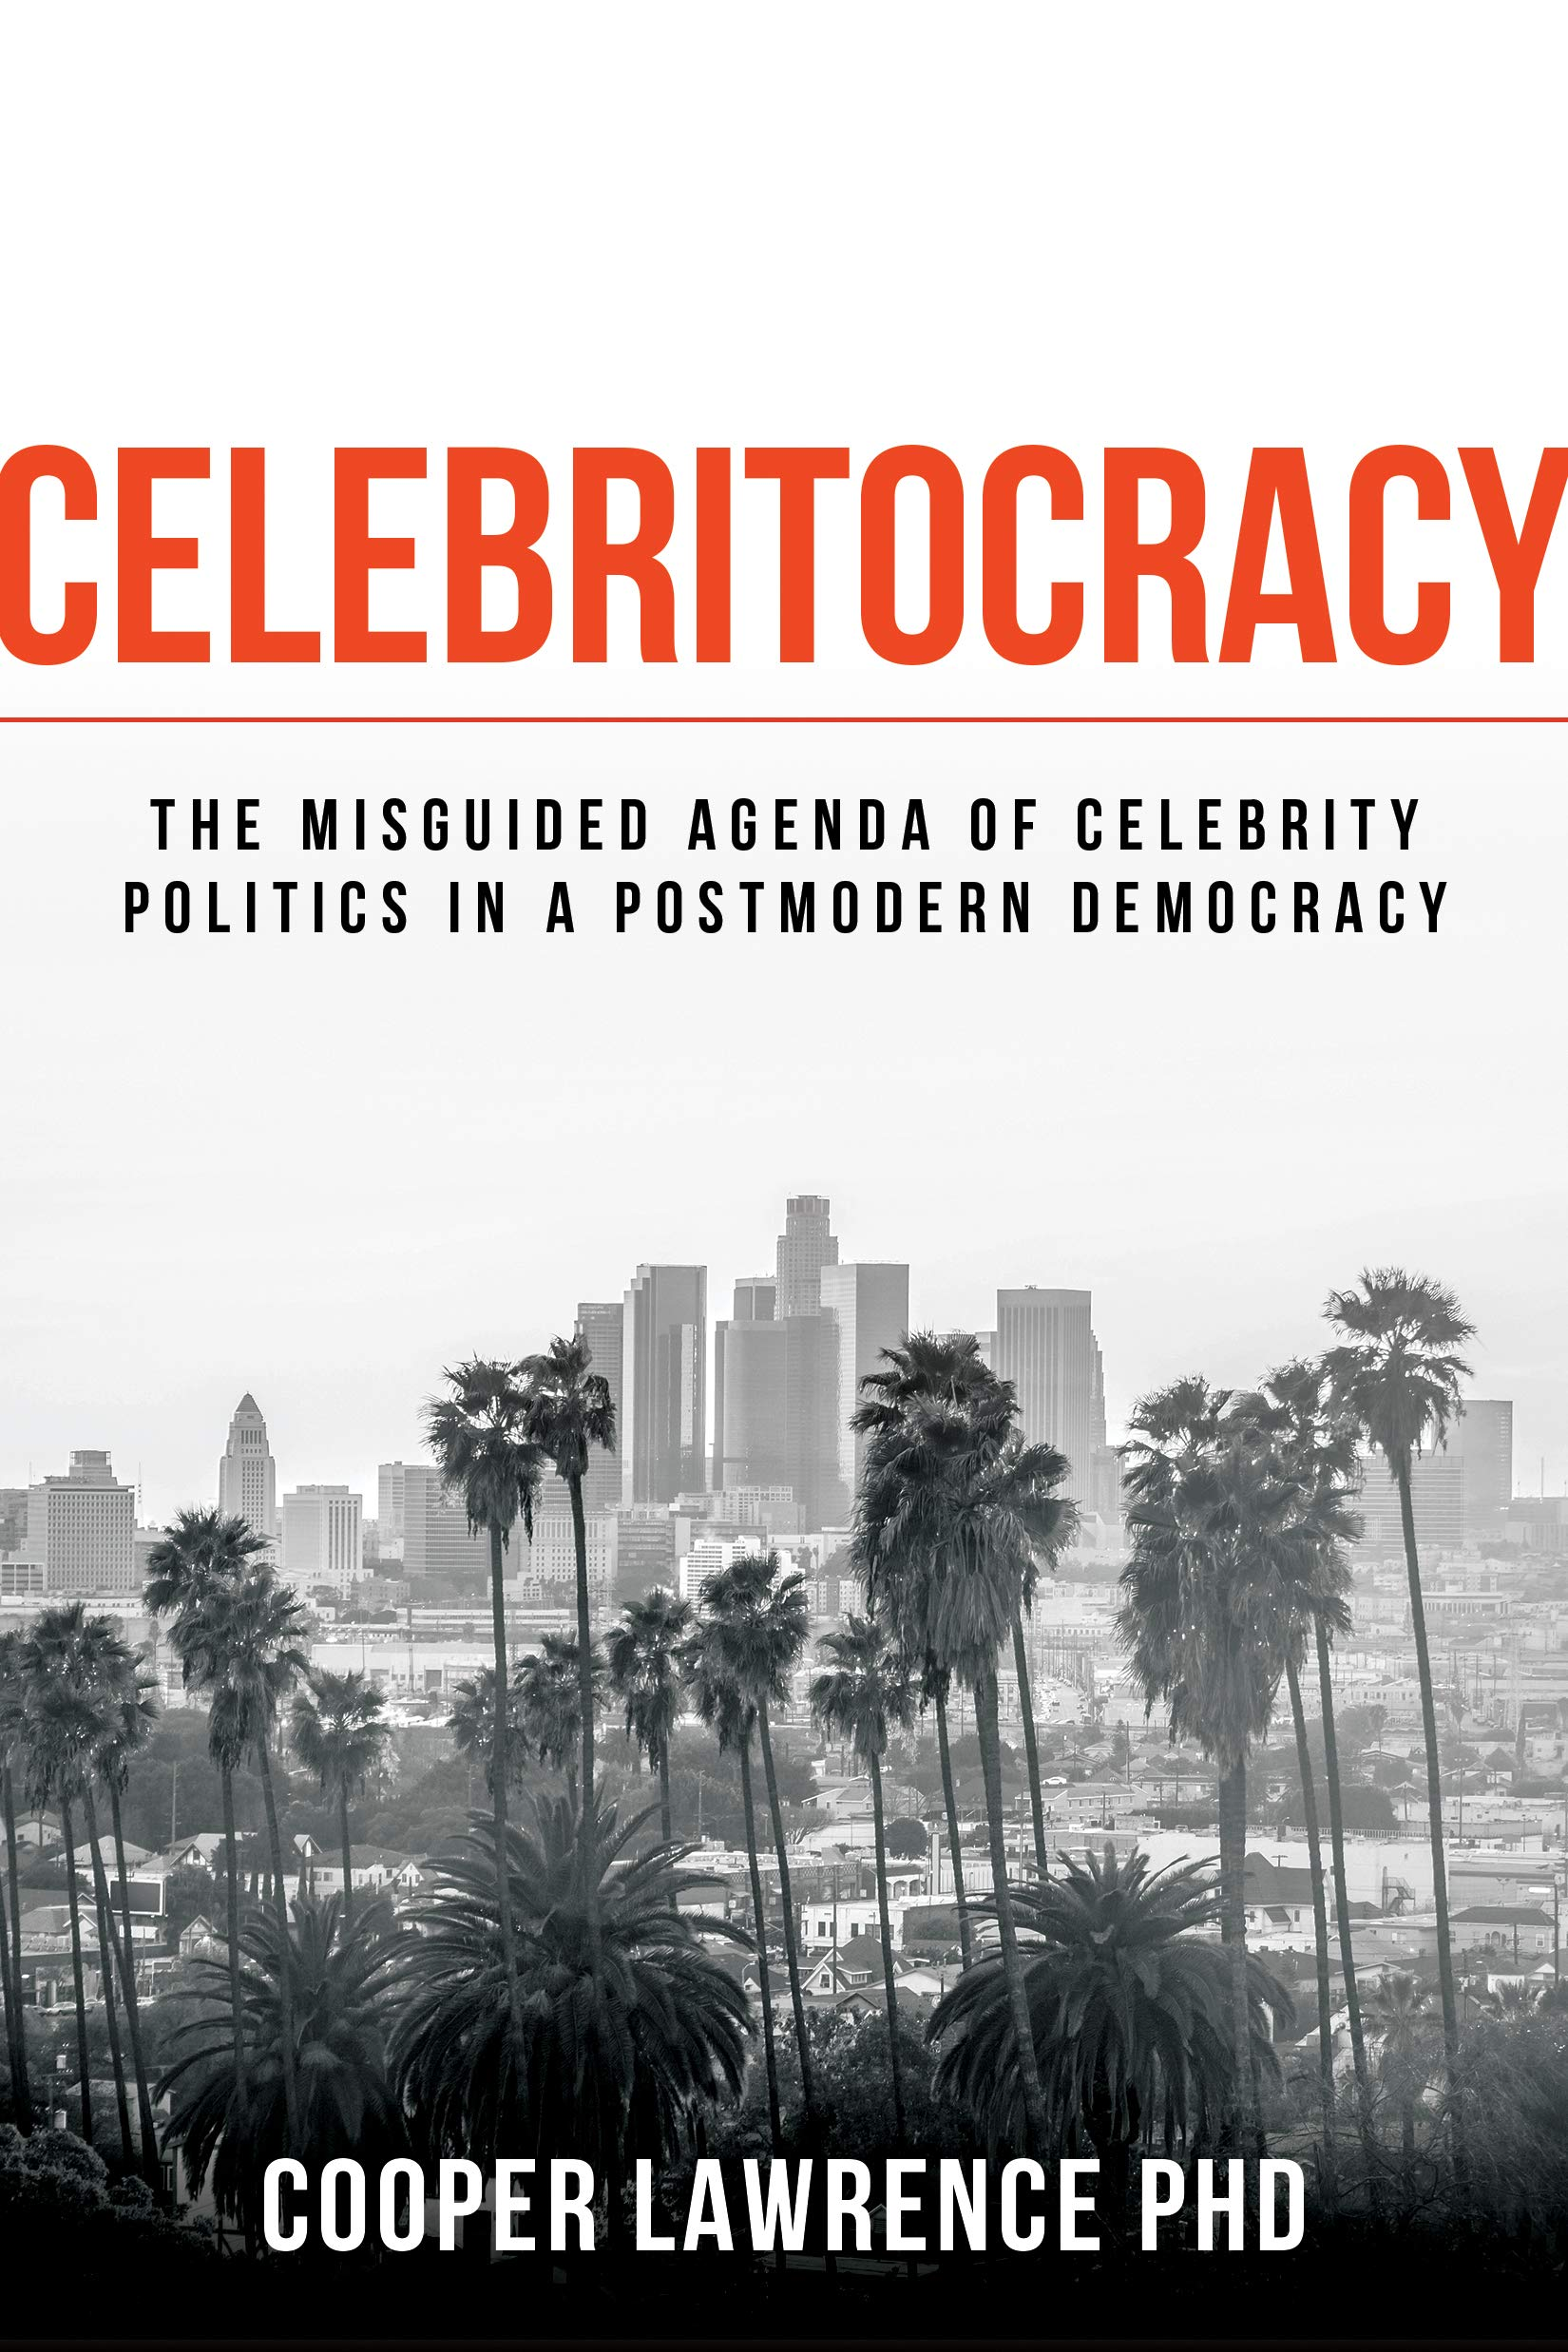 Celebritocracy: The Misguided Agenda of Celebrity Politics in a Postmodern Democracy